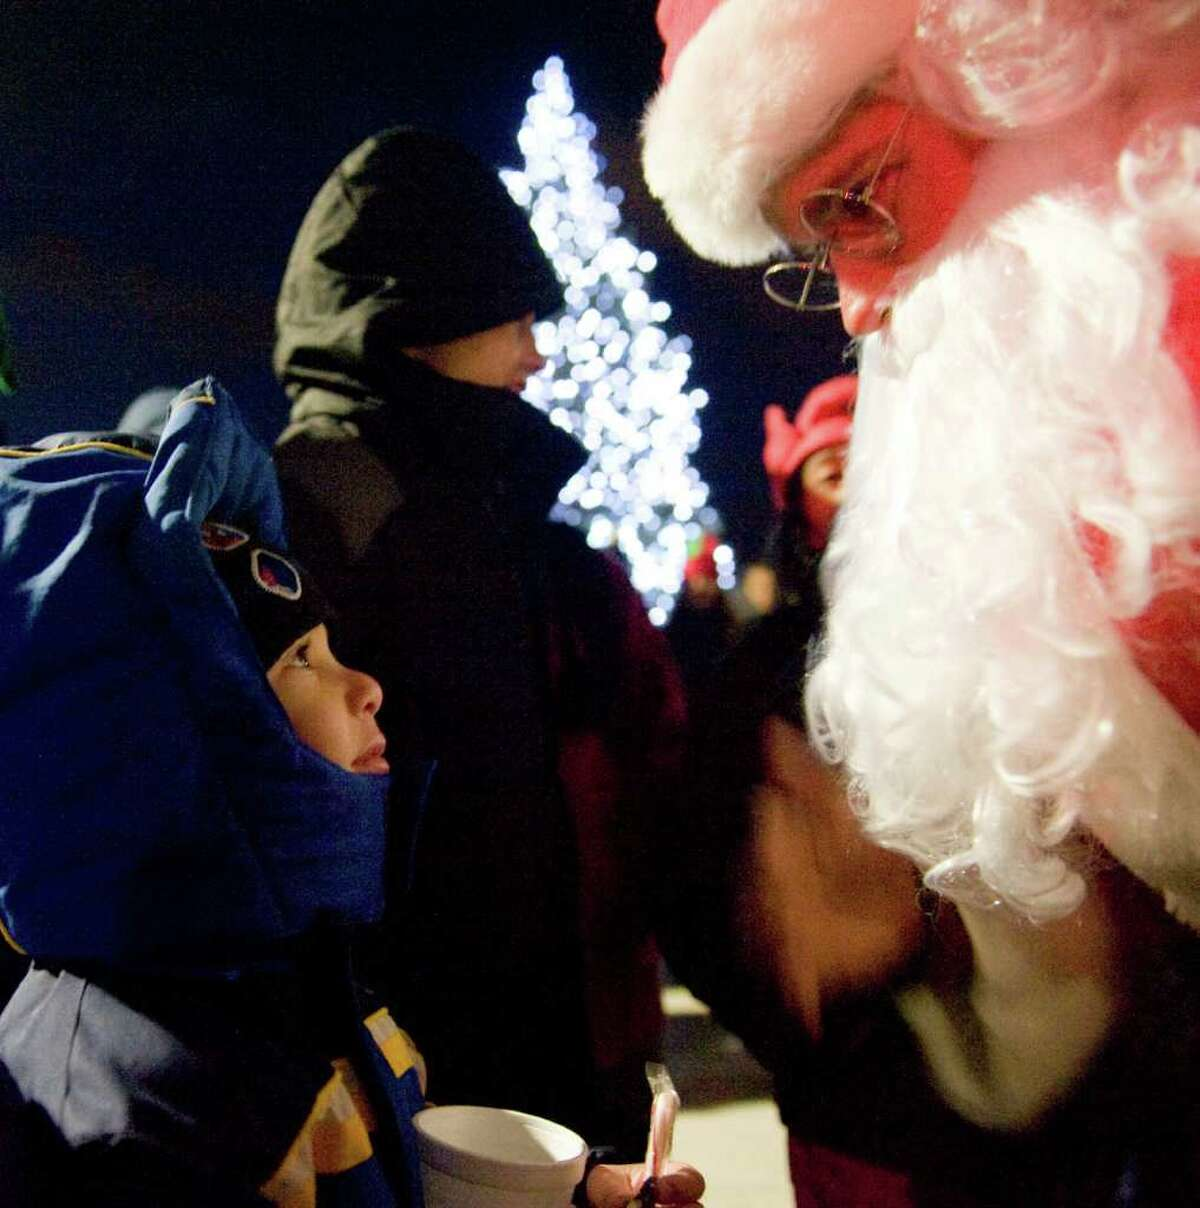 Malaki Benotmane, 4, chats with Santa Claus as Building and Land Technology, the developer of Harbor Point, hosts a tree-lighting ceremony for the first time in Commons Park, a public space newly built as part of Harbor Point in Stamford, Conn., Monday, December 6, 2010.